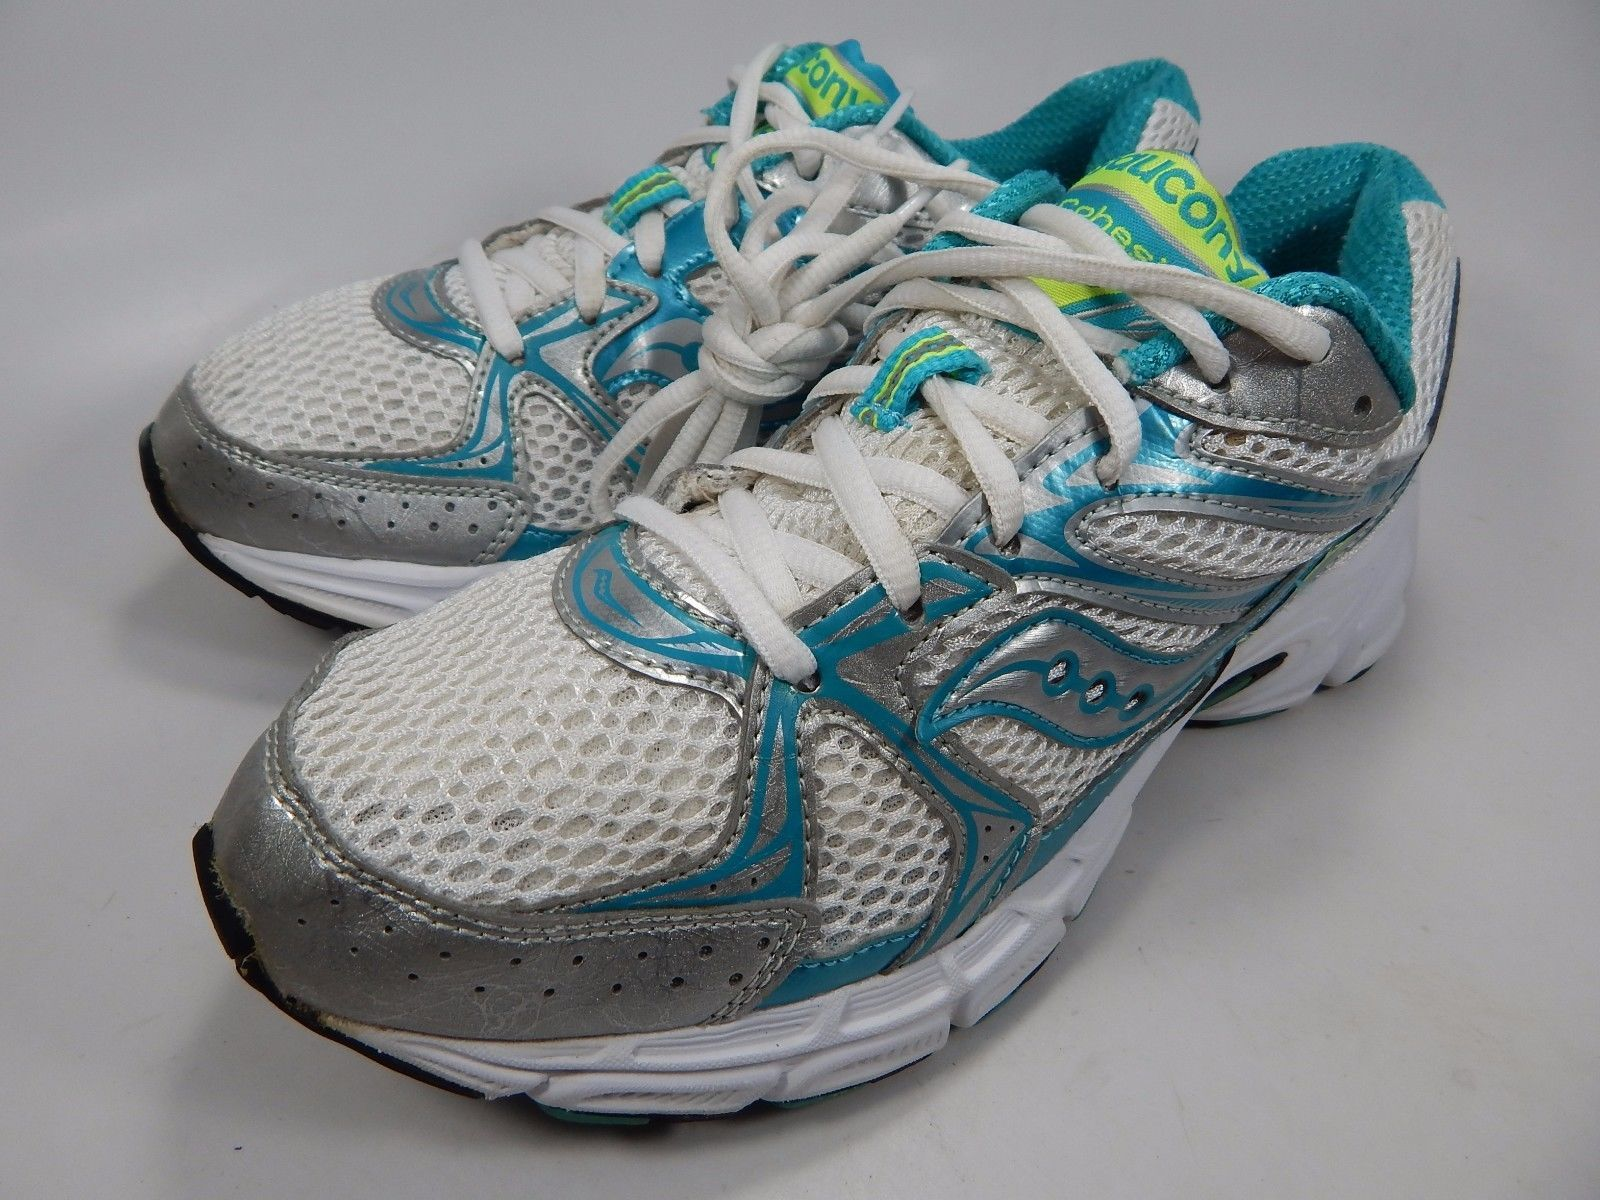 Saucony Cohesion 6 Women's Running Shoes Size US 8.5 M (B) EU 40 White 15156-2